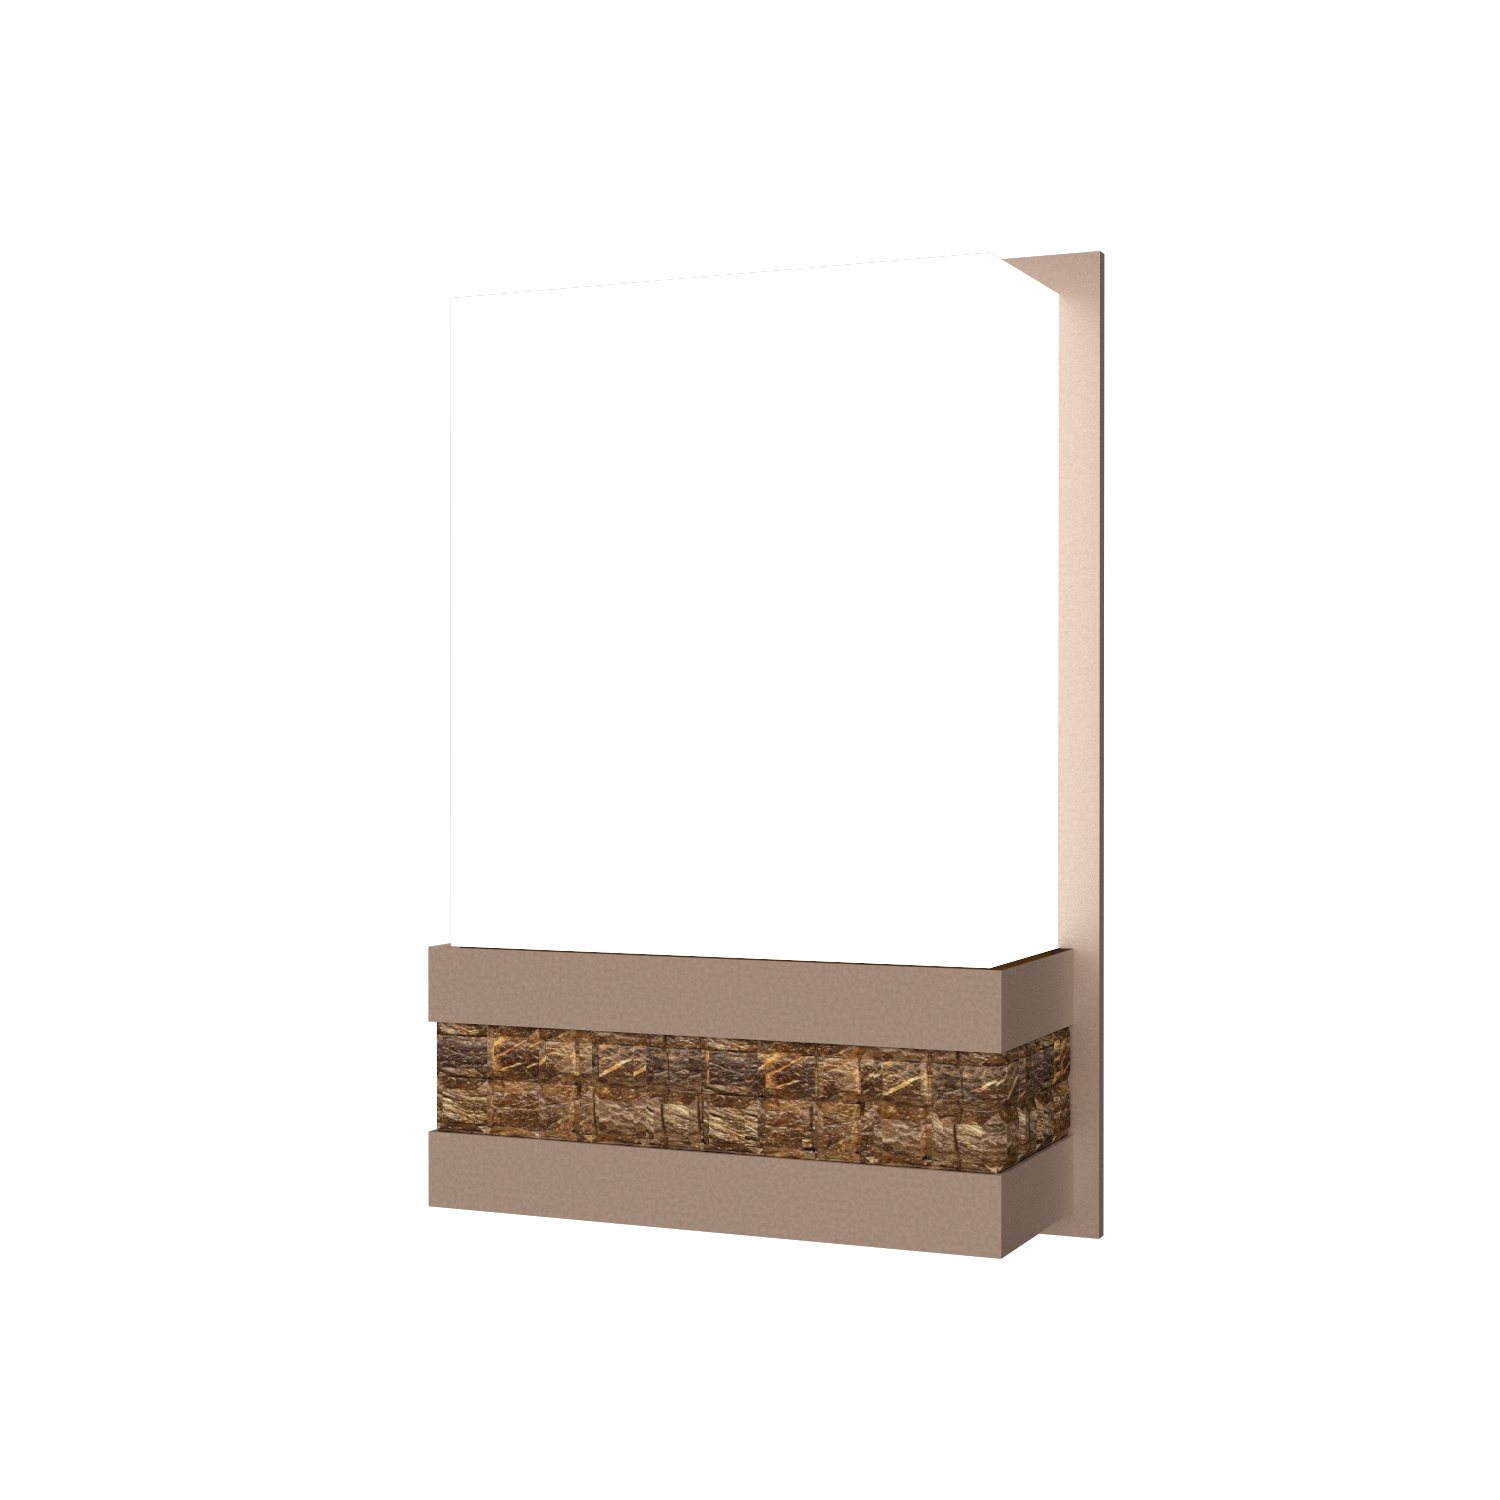 Wall Lamp Accord Pastilhada 443 - Pastilhada Line Accord Lighting | 33. Bronze